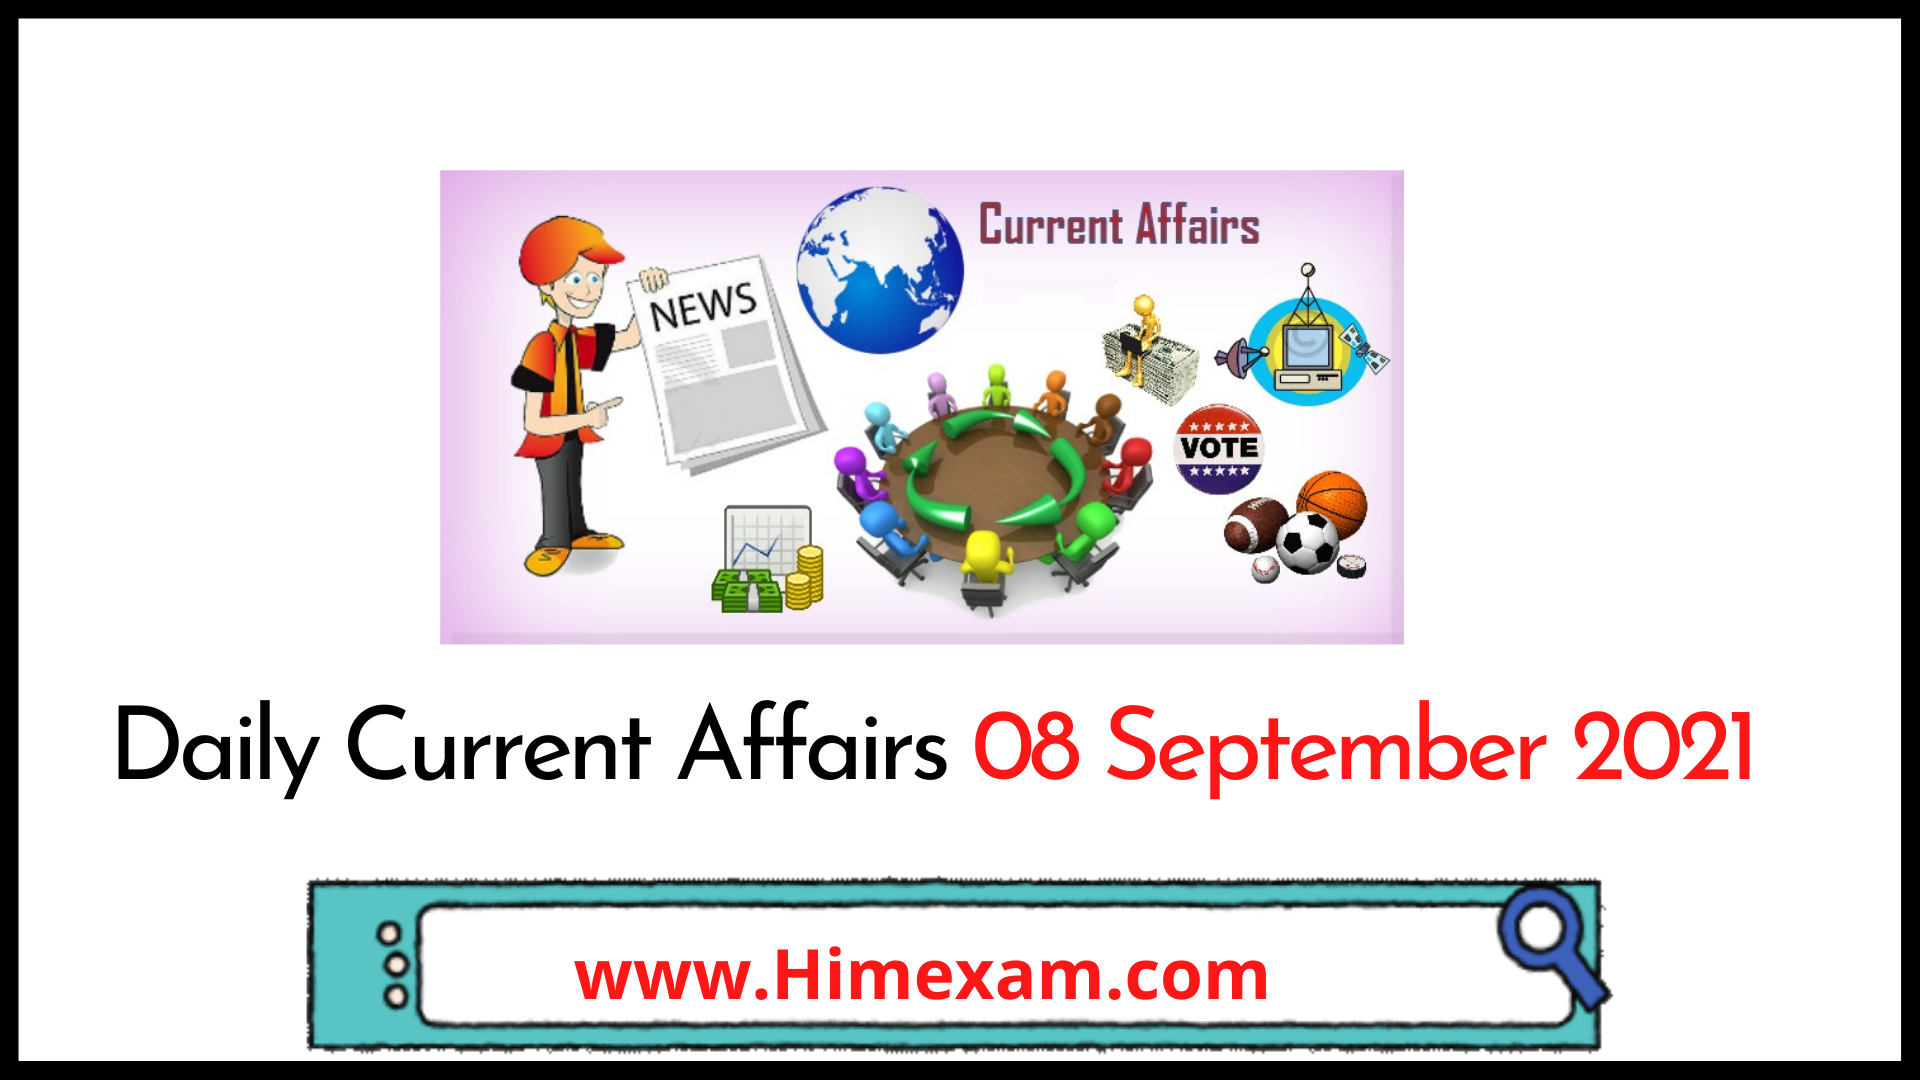 Daily Current Affairs 08 September 2021